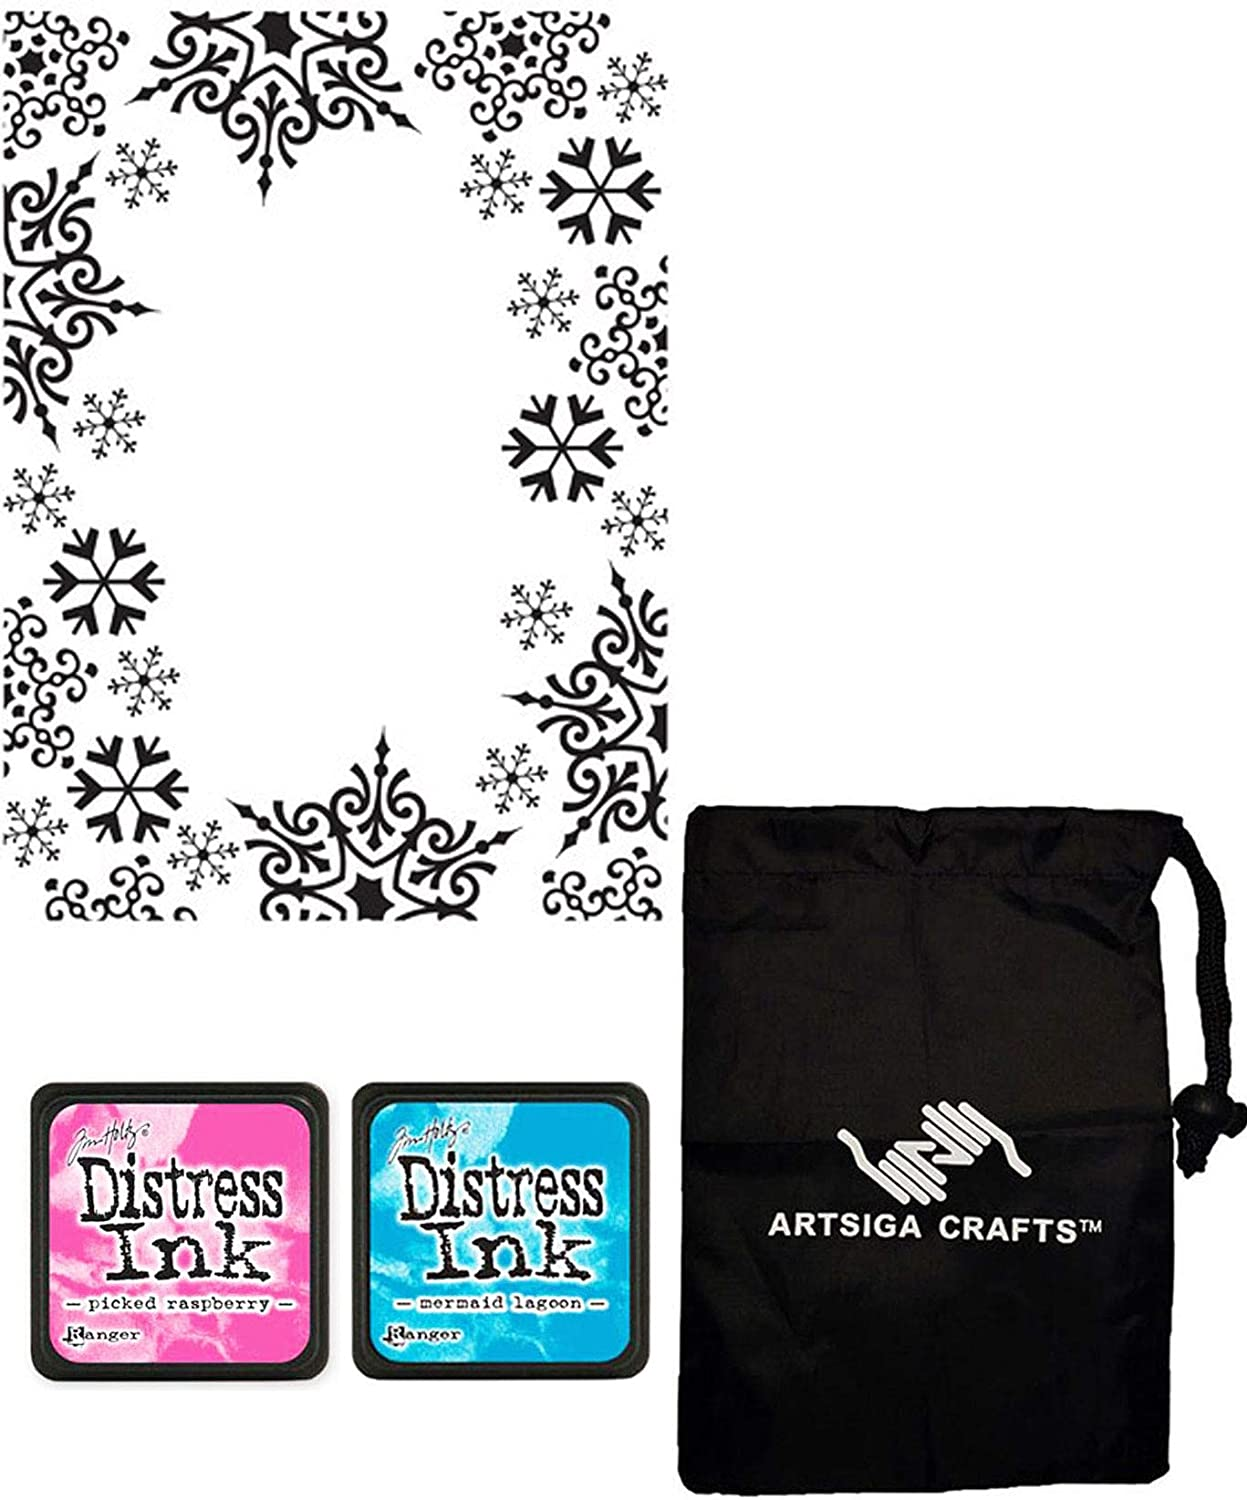 Darice DIY Embossing Folders for Card Making Snowflake Trim 4.25 x 5.75 inches 1219-135 Bundle with 2 Tim Holtz Distressed Ink Mini Pads and 1 Artsiga Crafts Small Bag